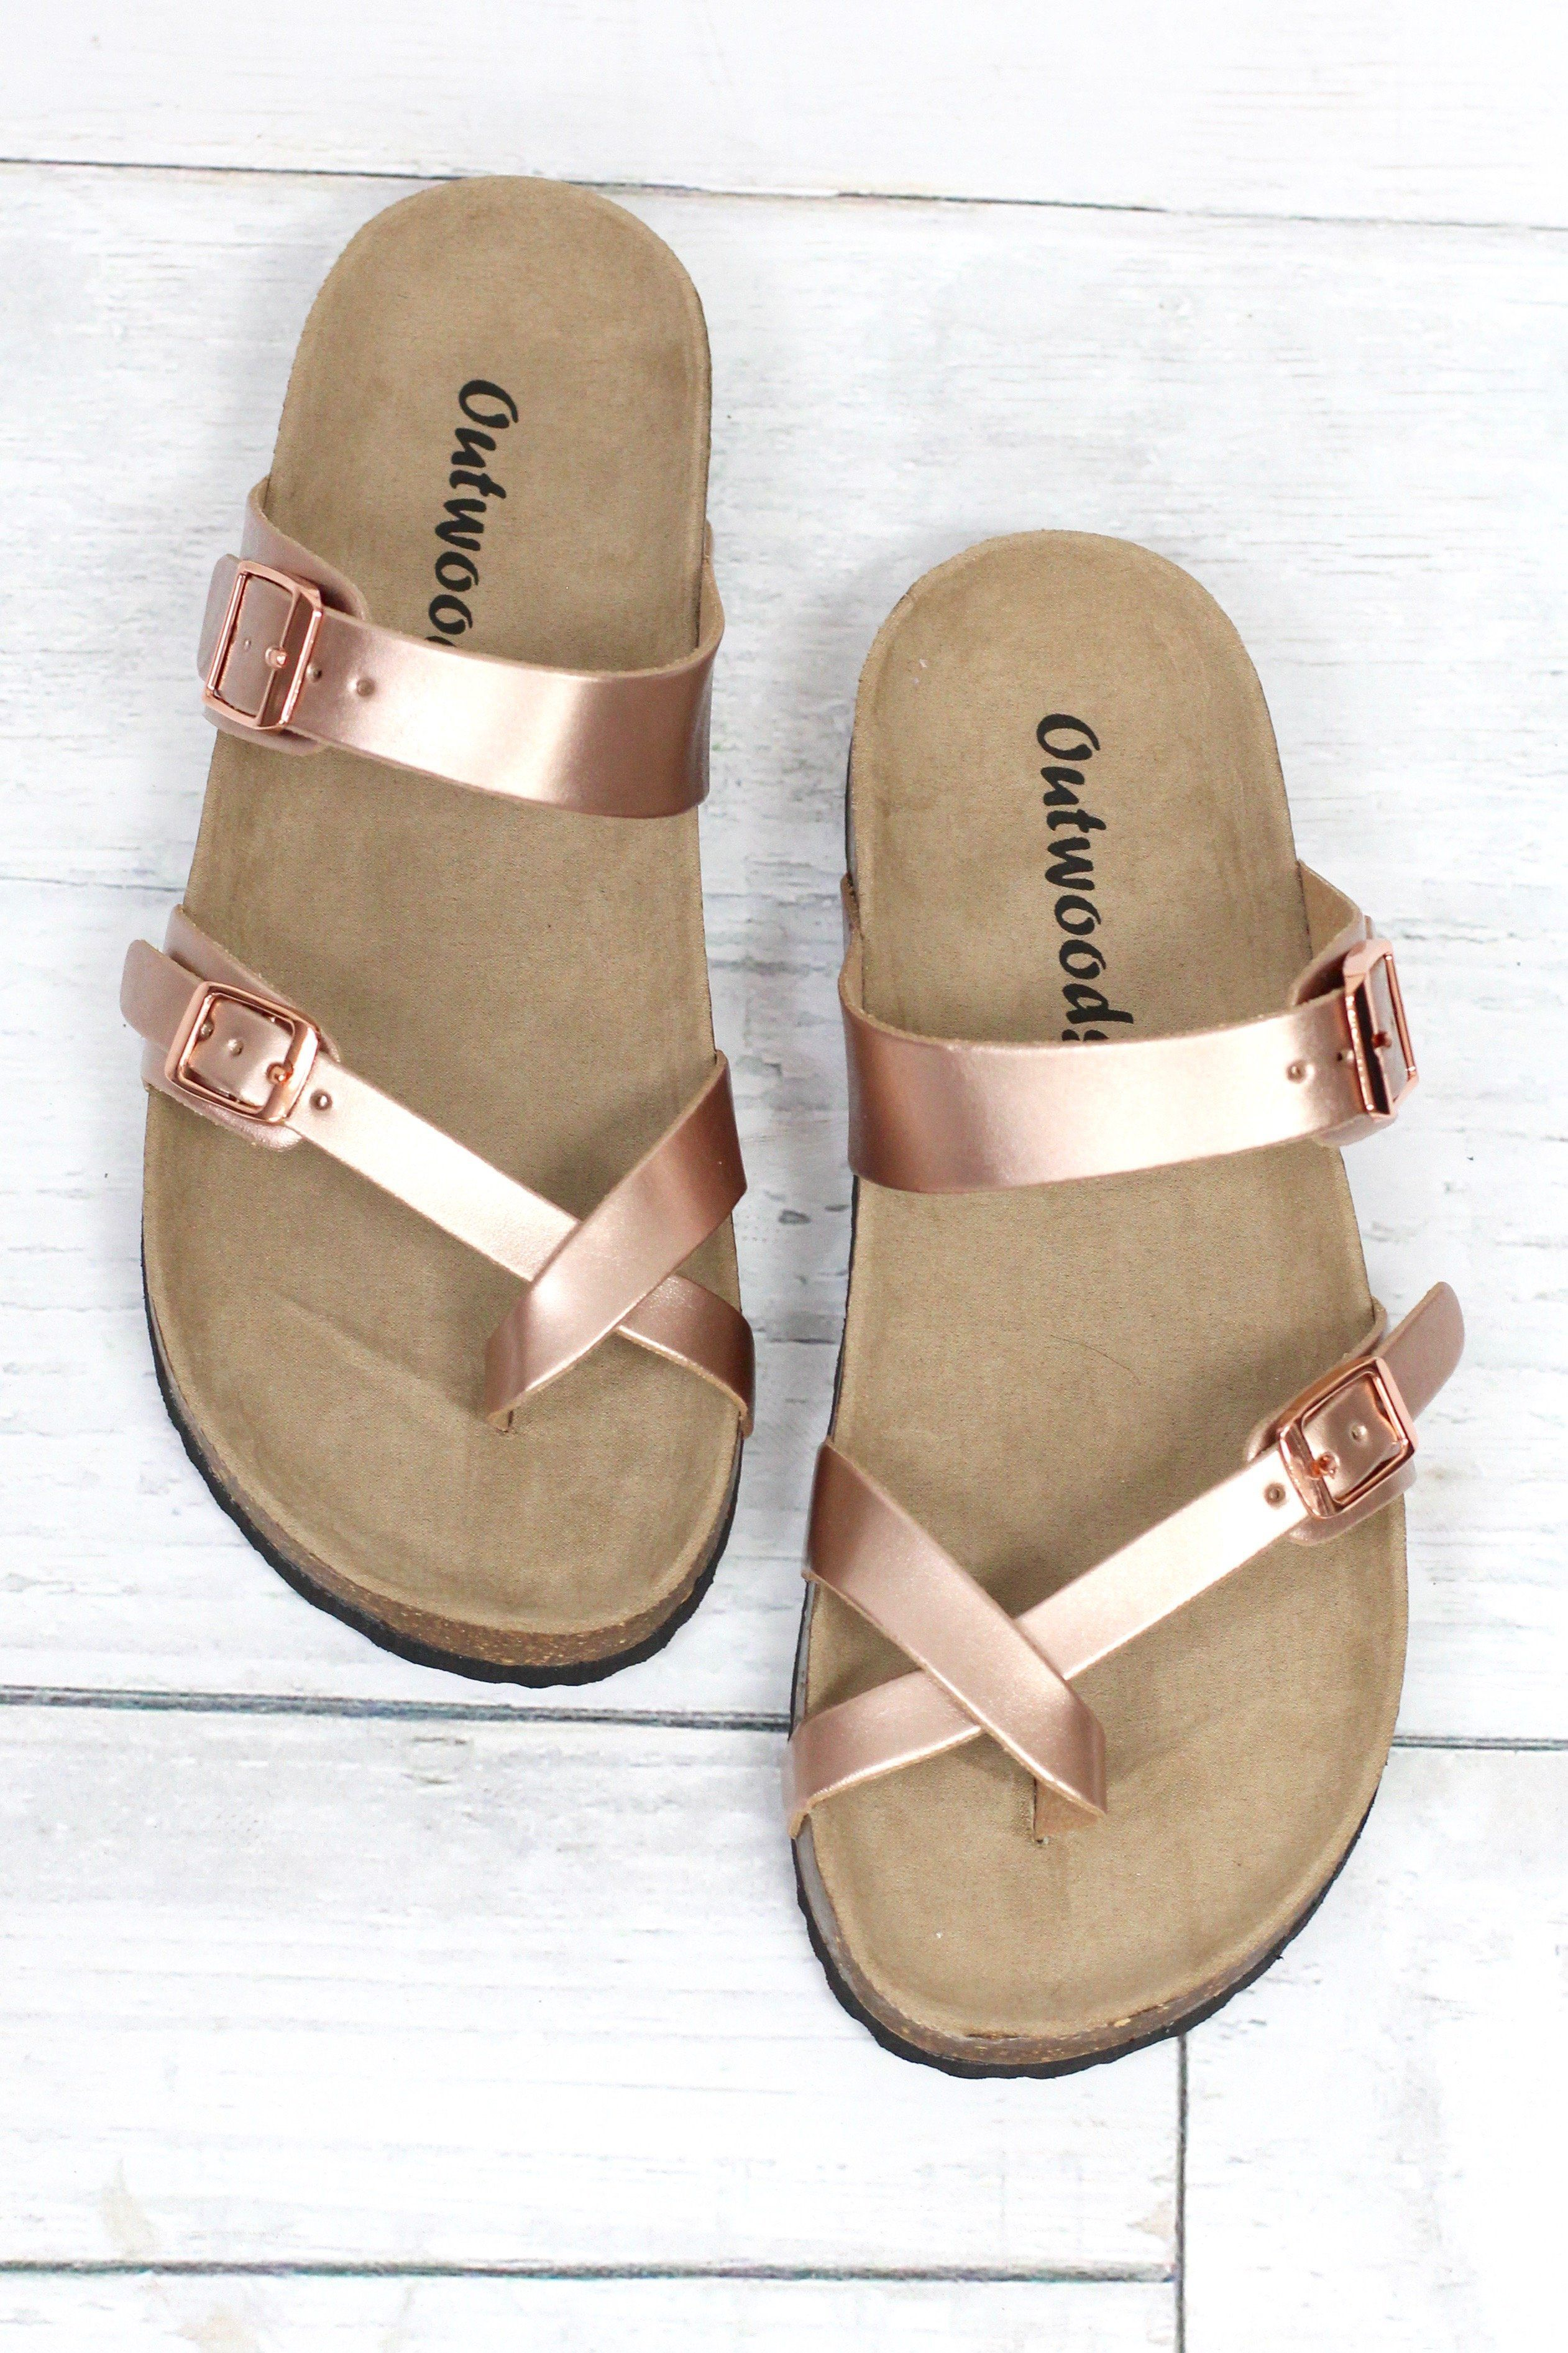 2b2fcf72365732 Similar looking to the Birkenstock sandals at a fraction of the cost! Toe  strap